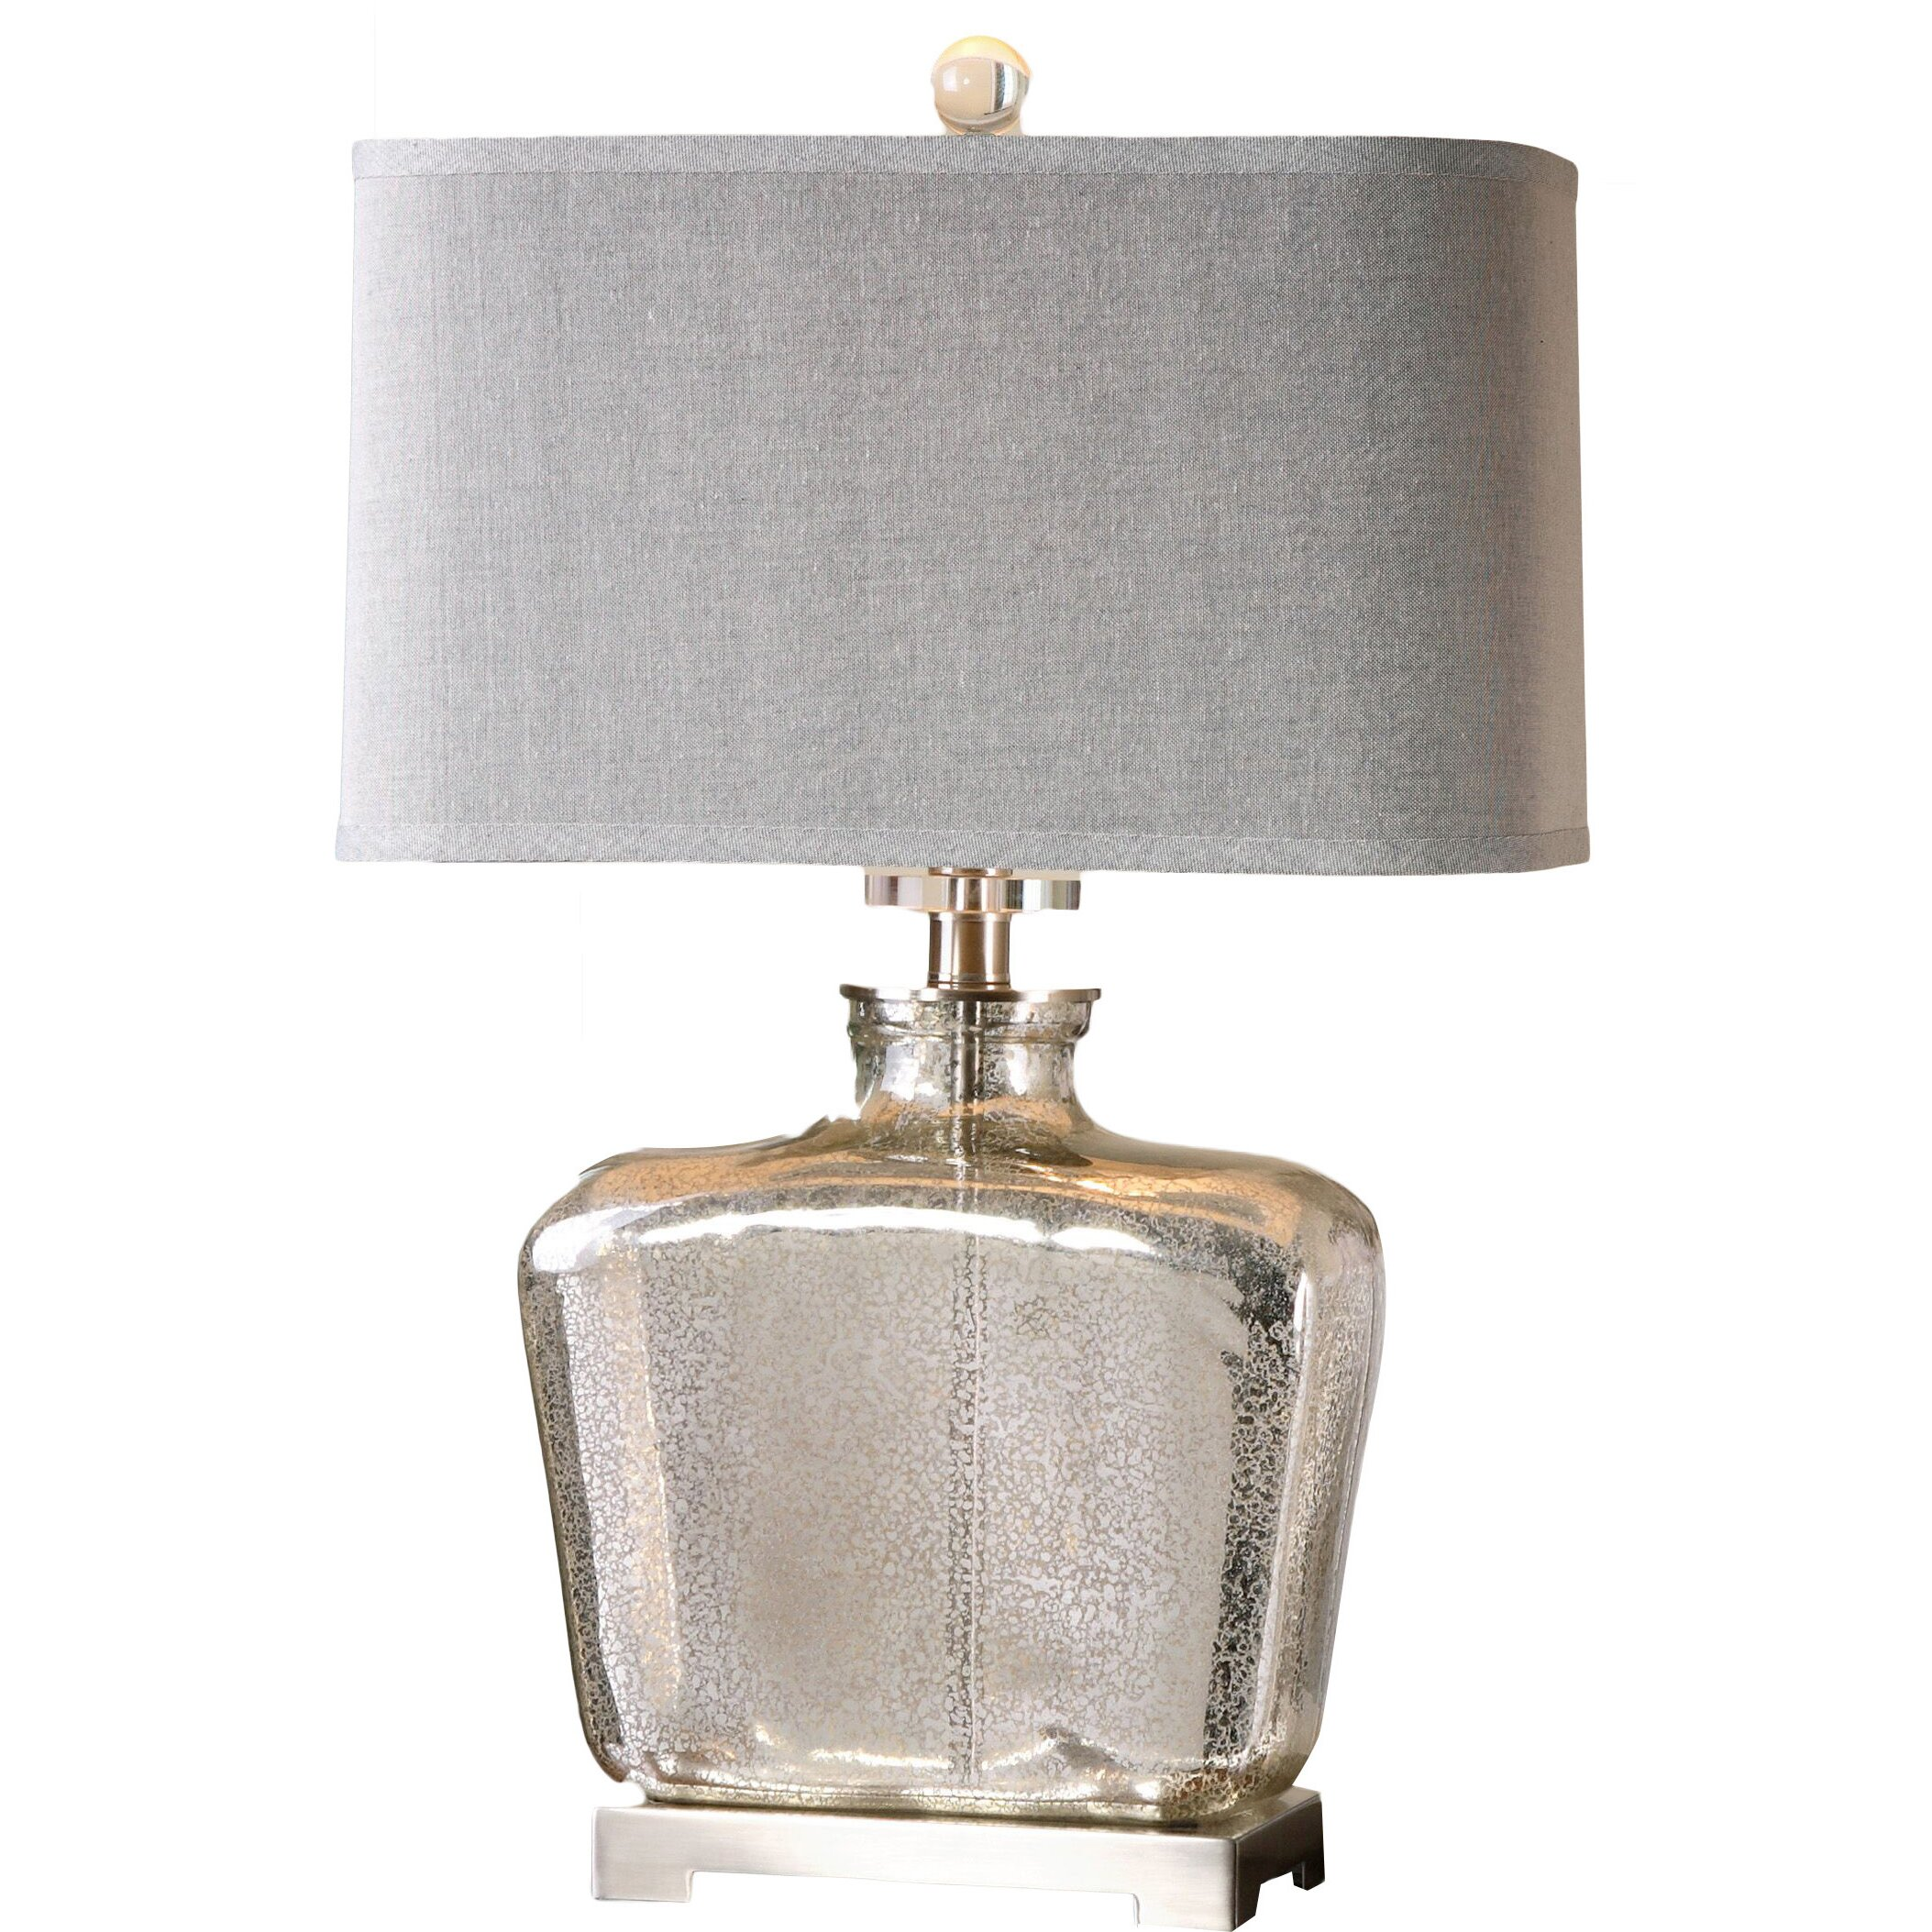 Uttermost Molinara 28 H Table Lamp With Rectangular Shade